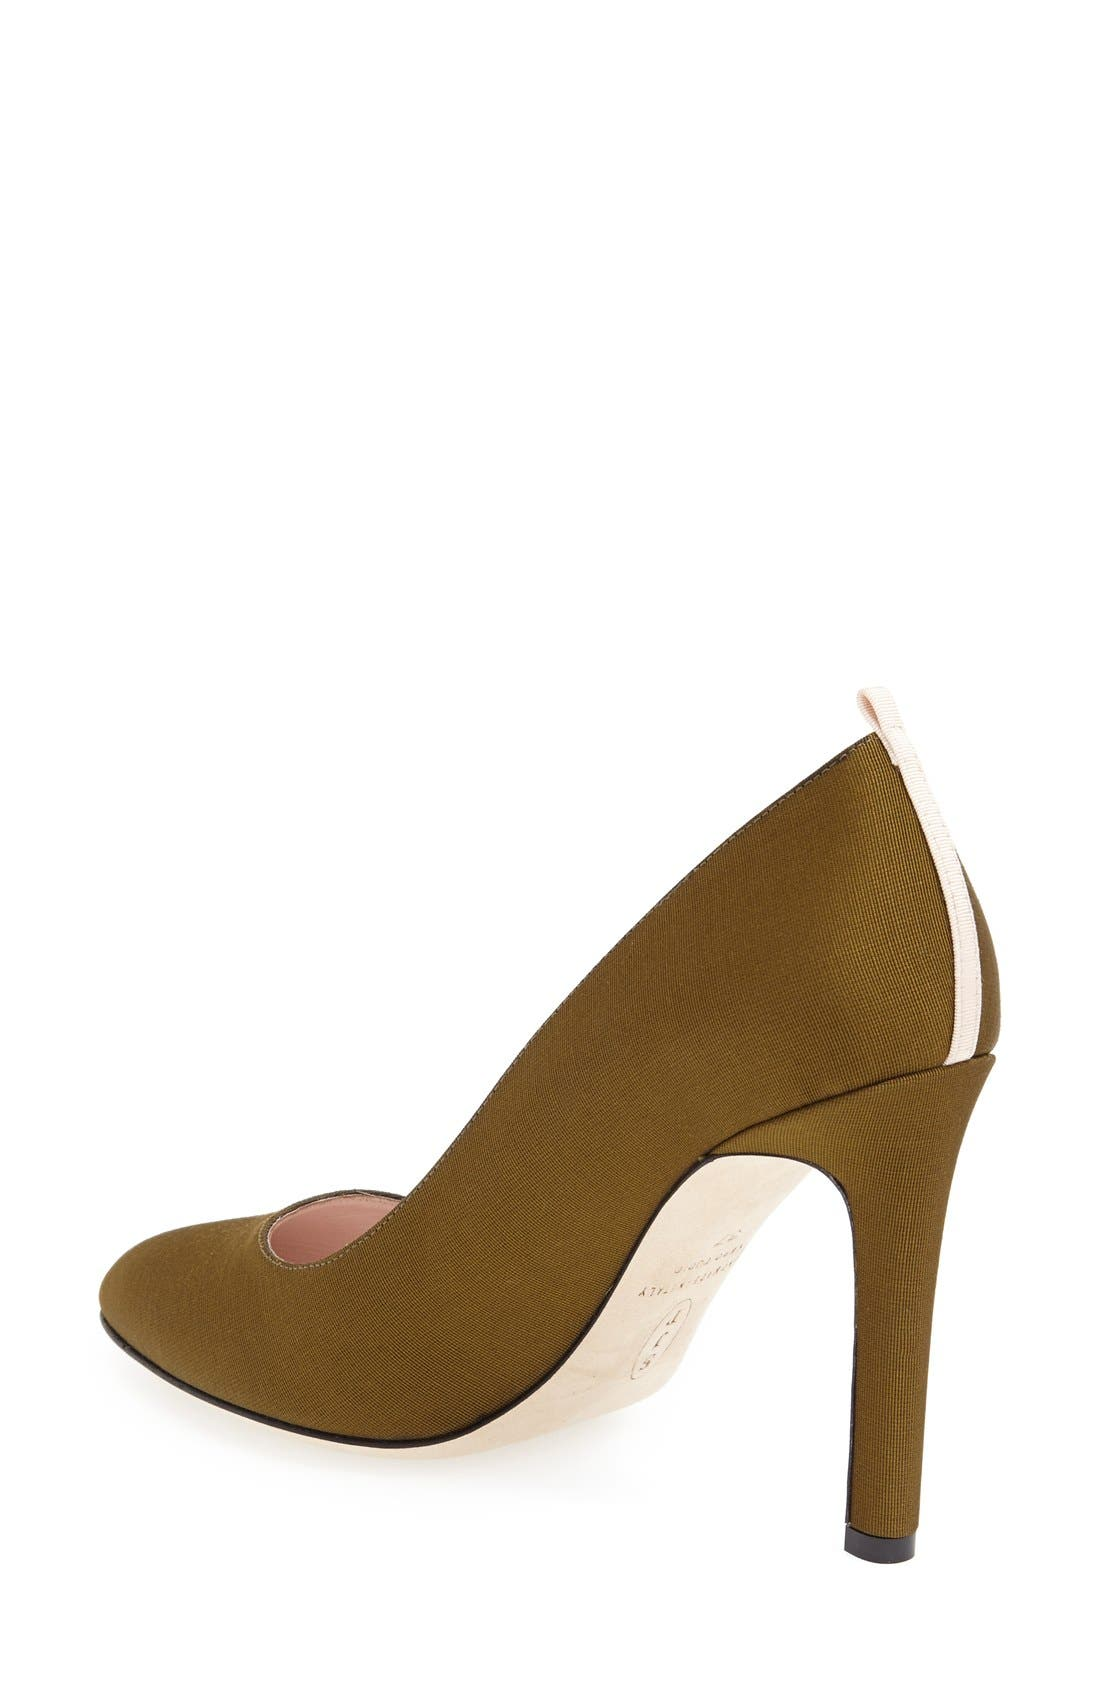 SJP 'Lady' Pump,                             Alternate thumbnail 3, color,                             300